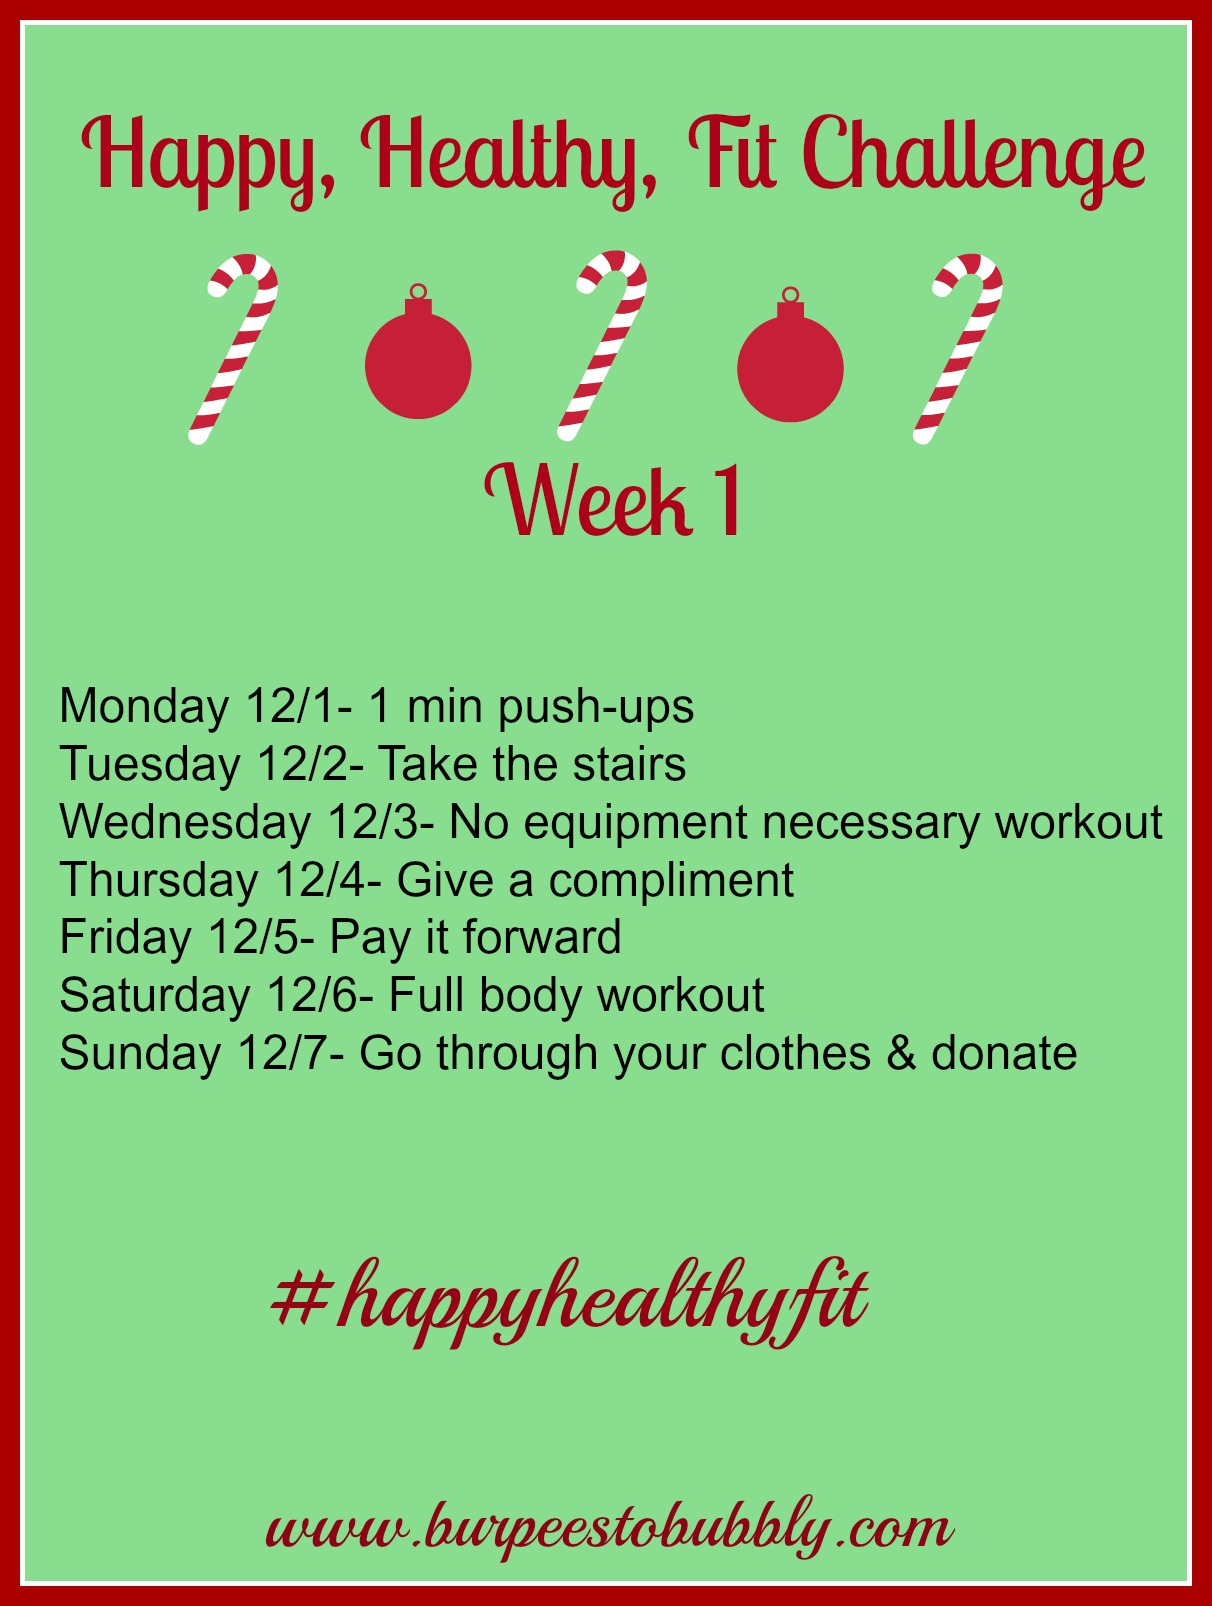 Happy, Healthy, Fit: Week 1 '�  Burpees To Bubbly